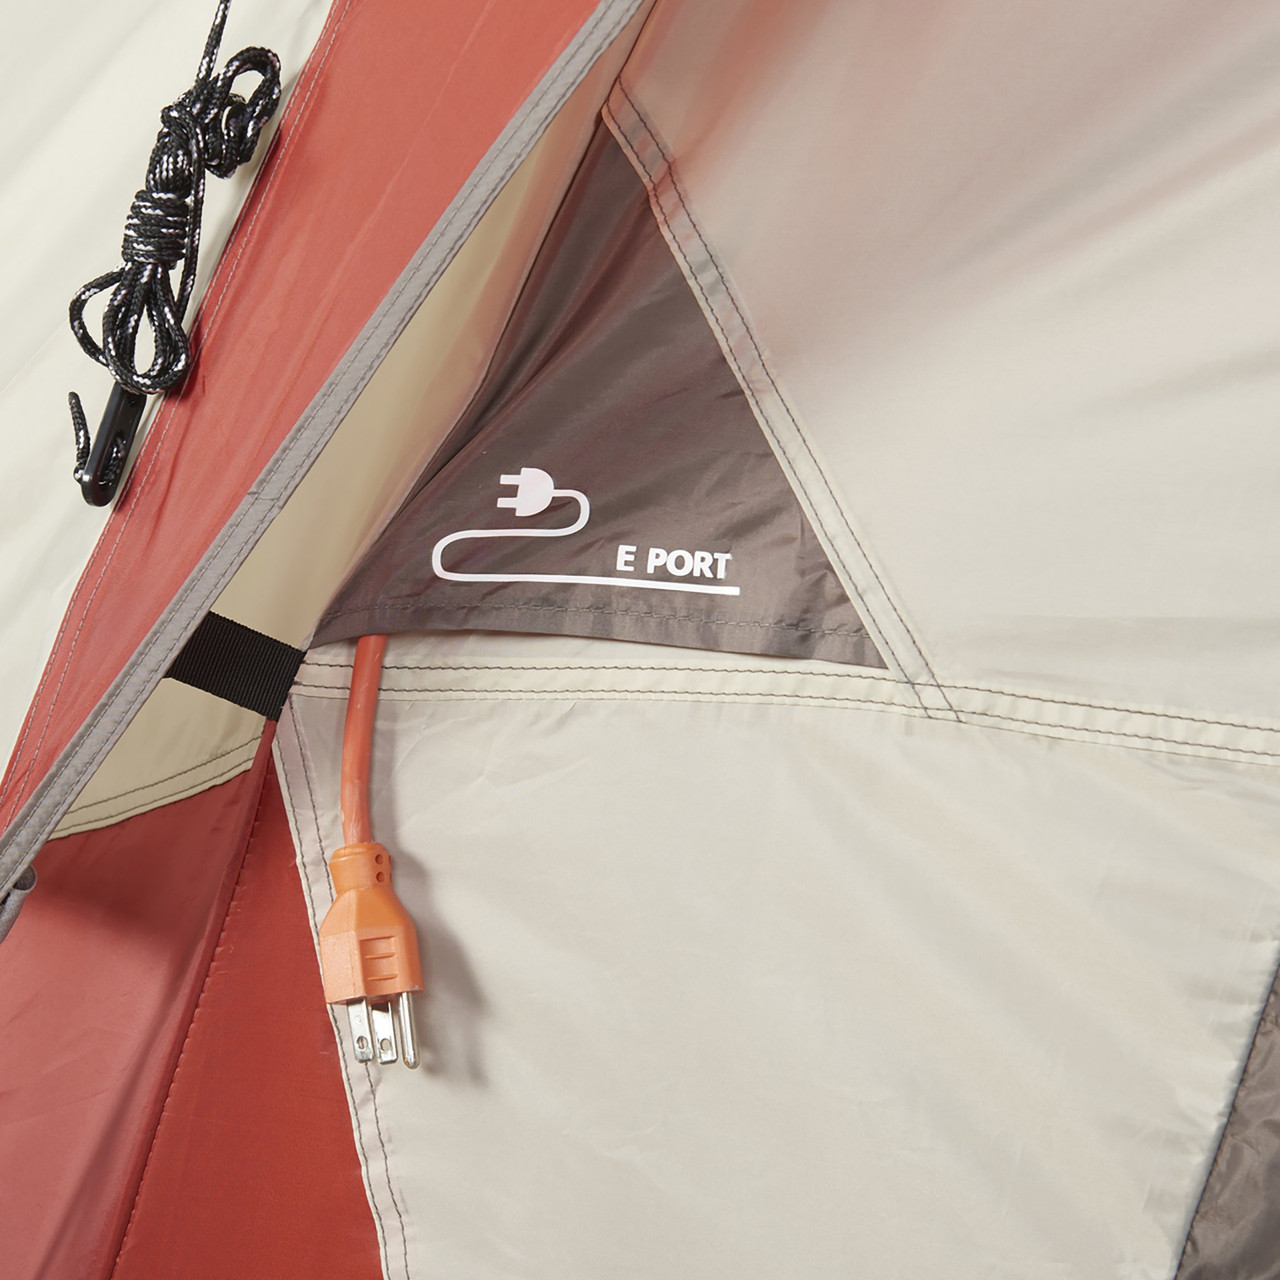 Interior close up of Wenzel Bristlecone 8 Person Dome Tent, showing port for cords